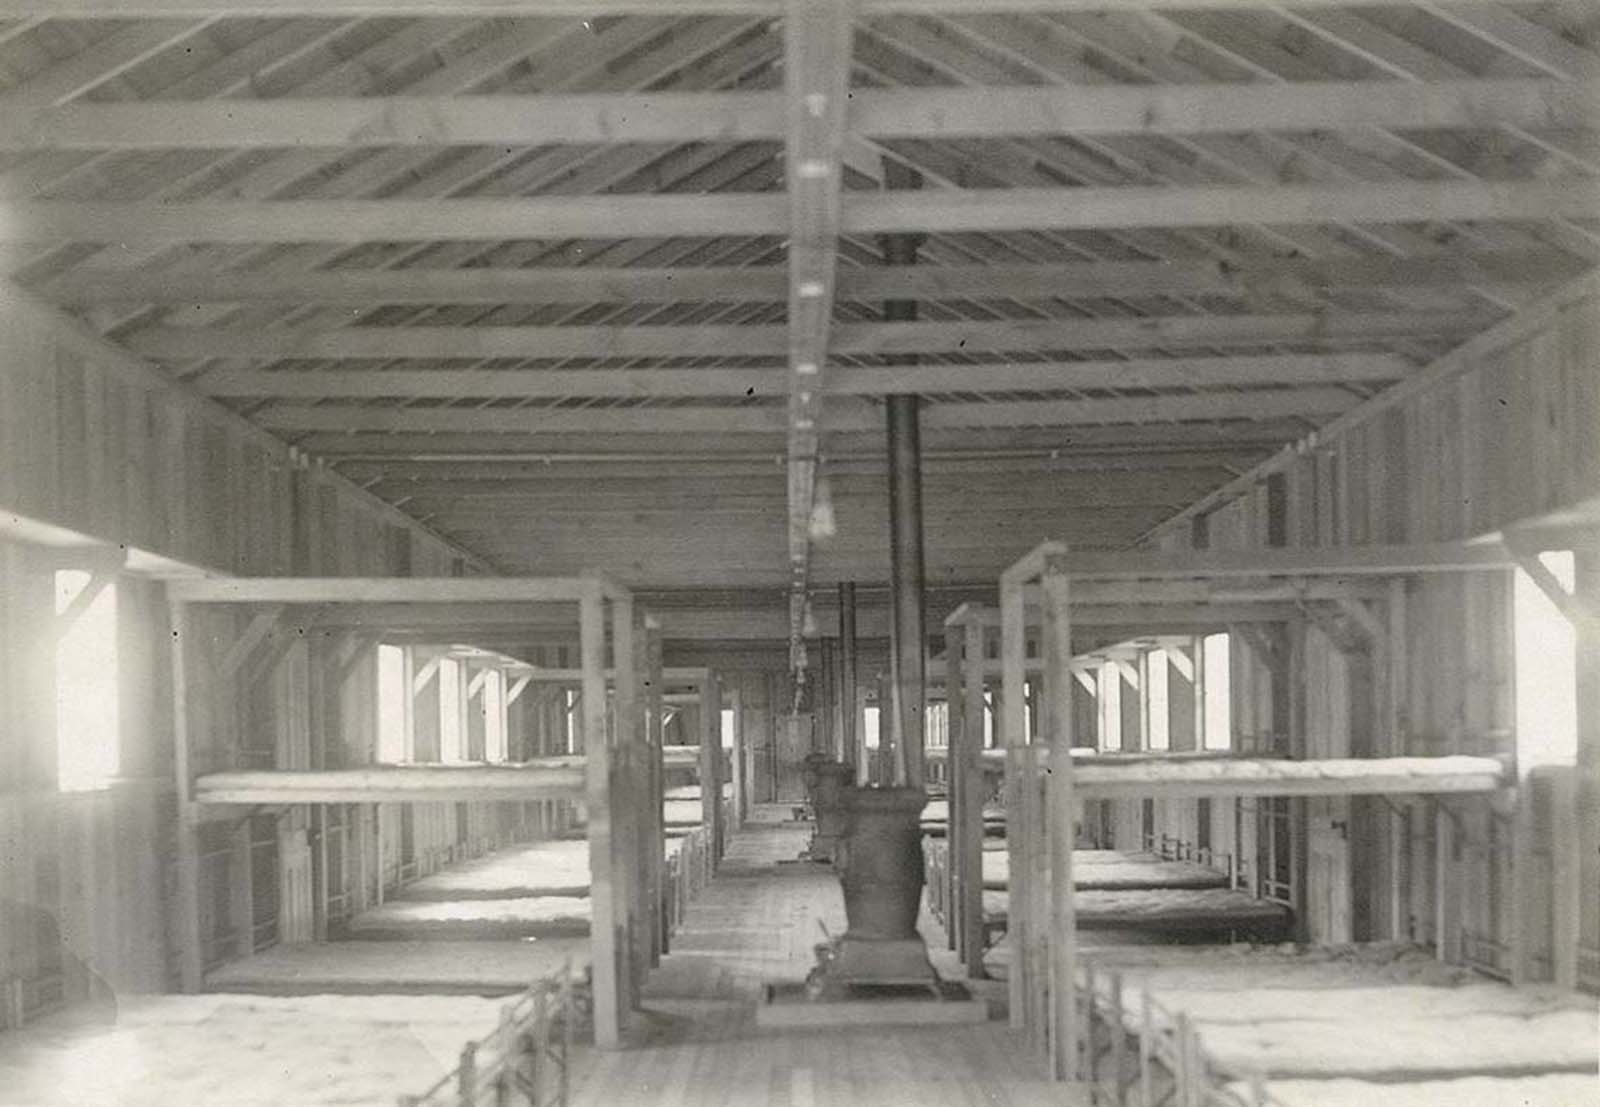 Inside the barracks of the internment camp.